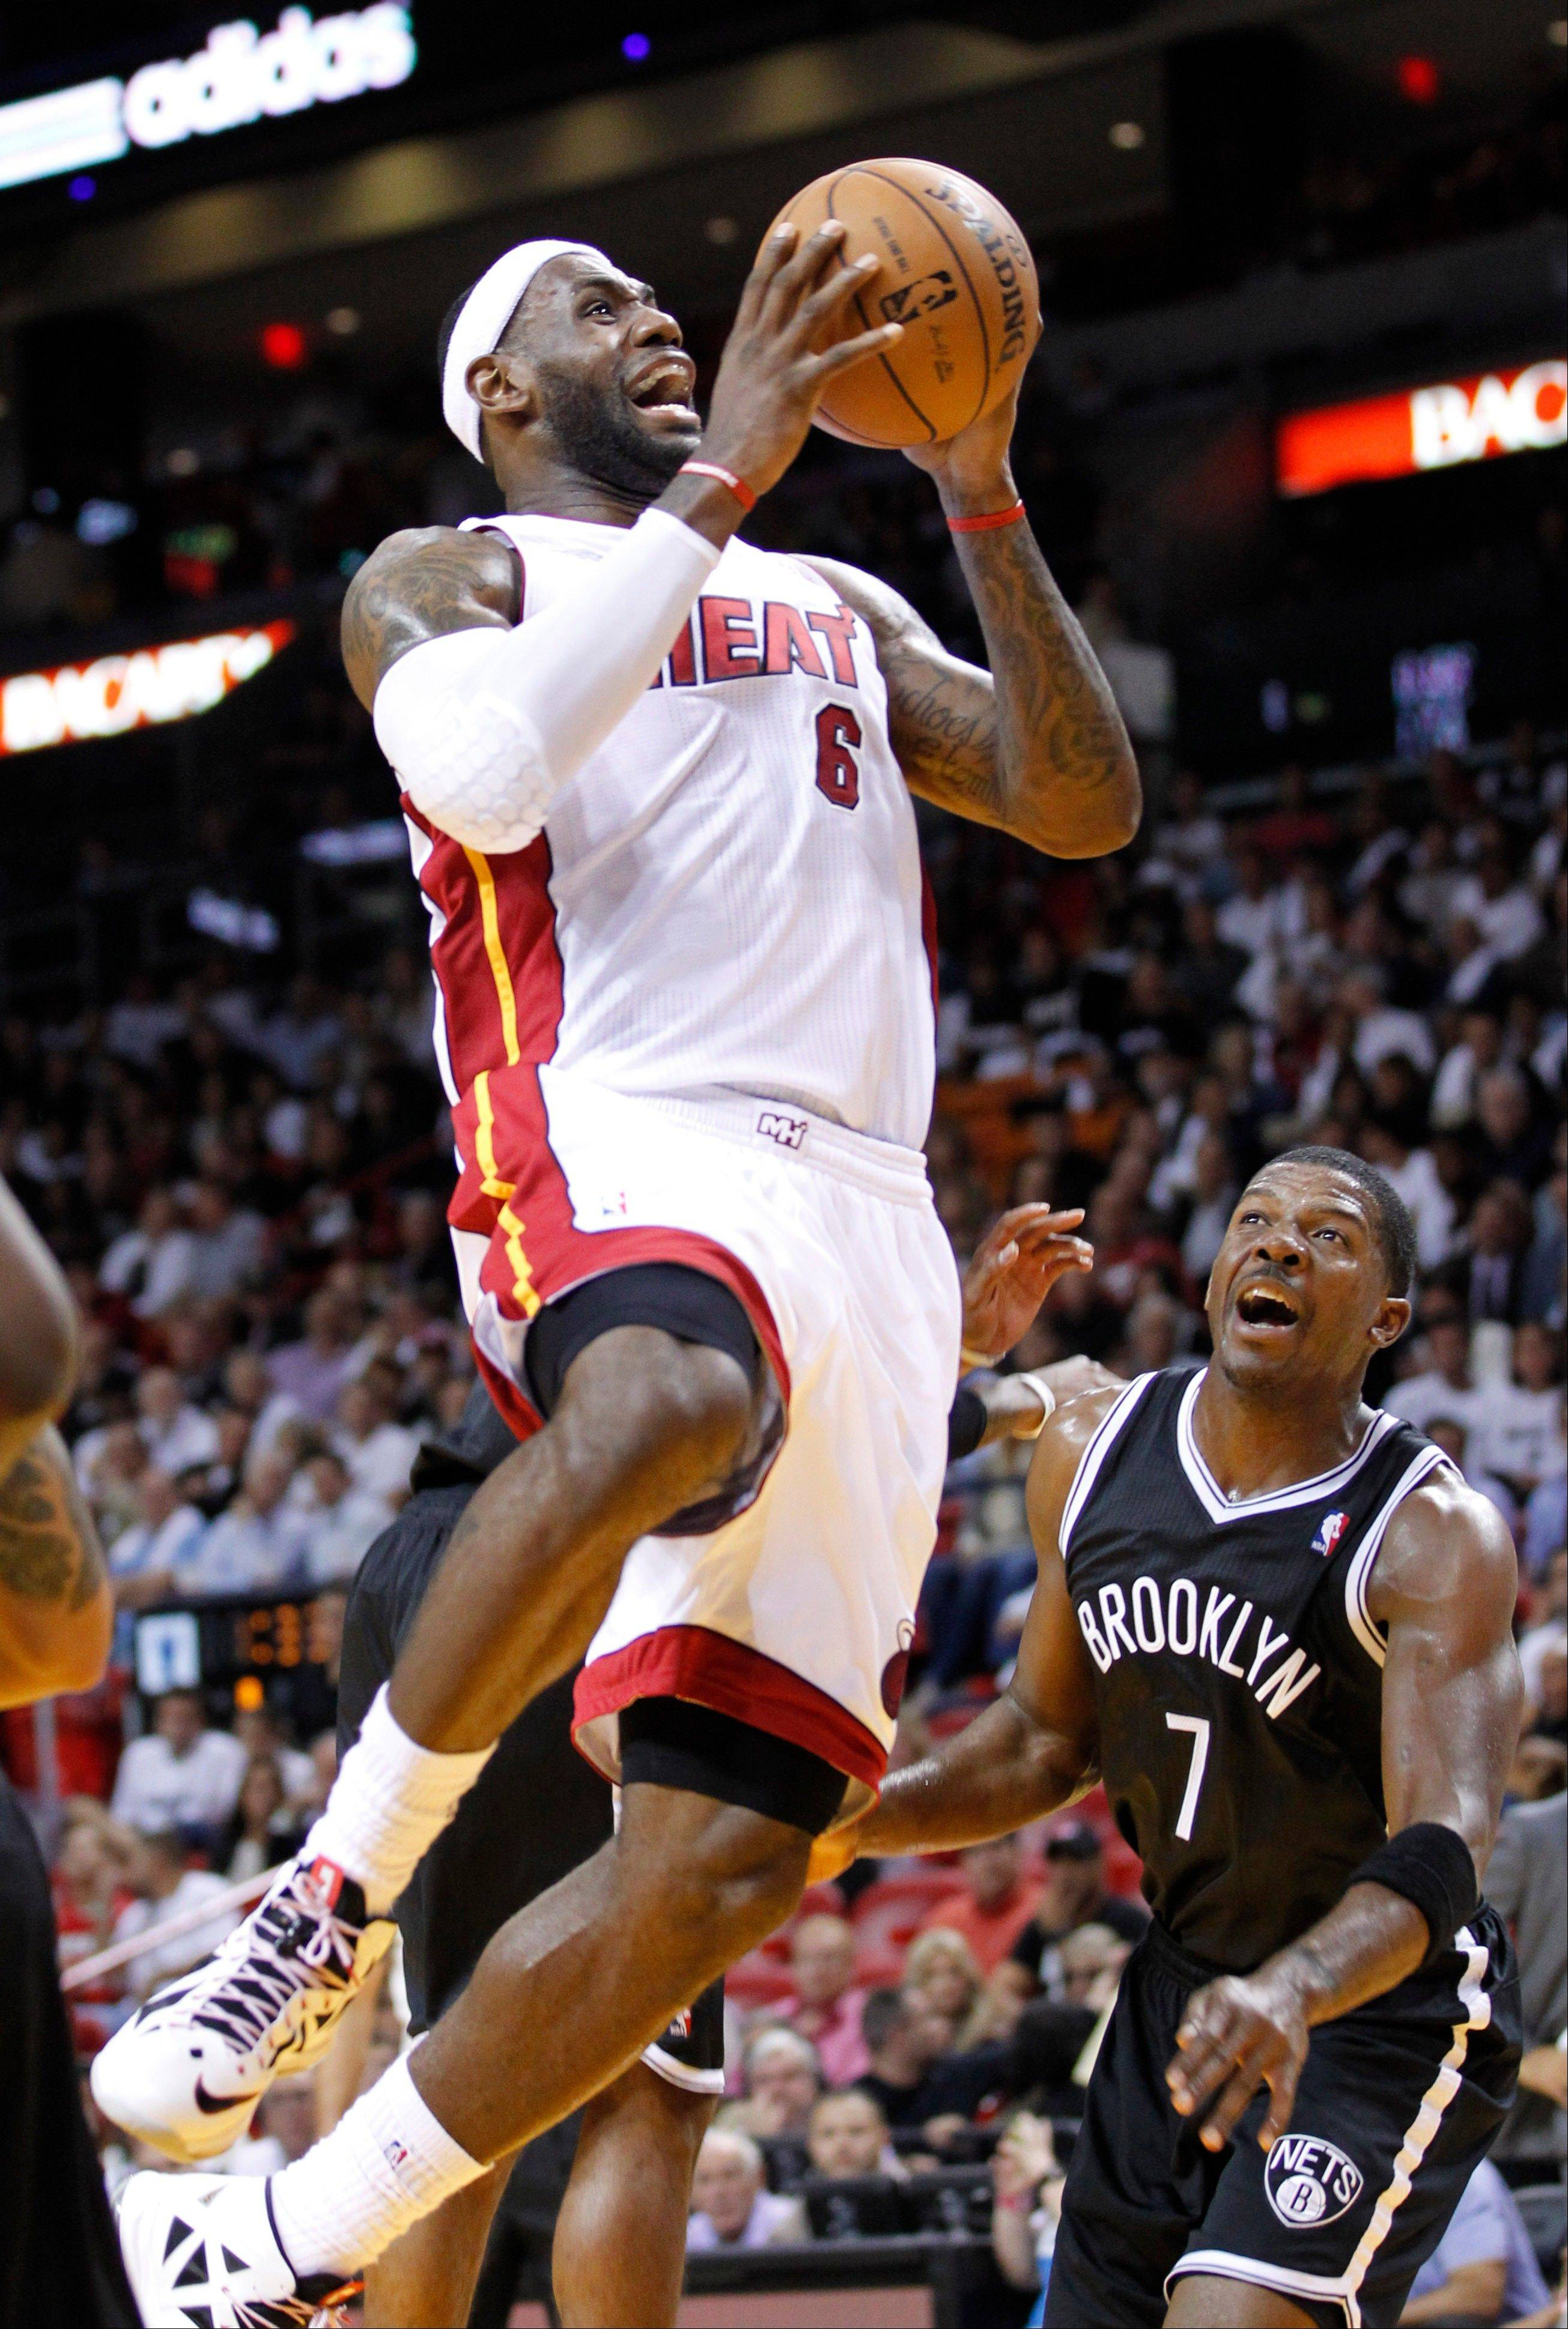 Miami Heat forward LeBron James goes up for a shot against Brooklyn Nets guard Joe Johnson Wednesday during the first half in Miami.